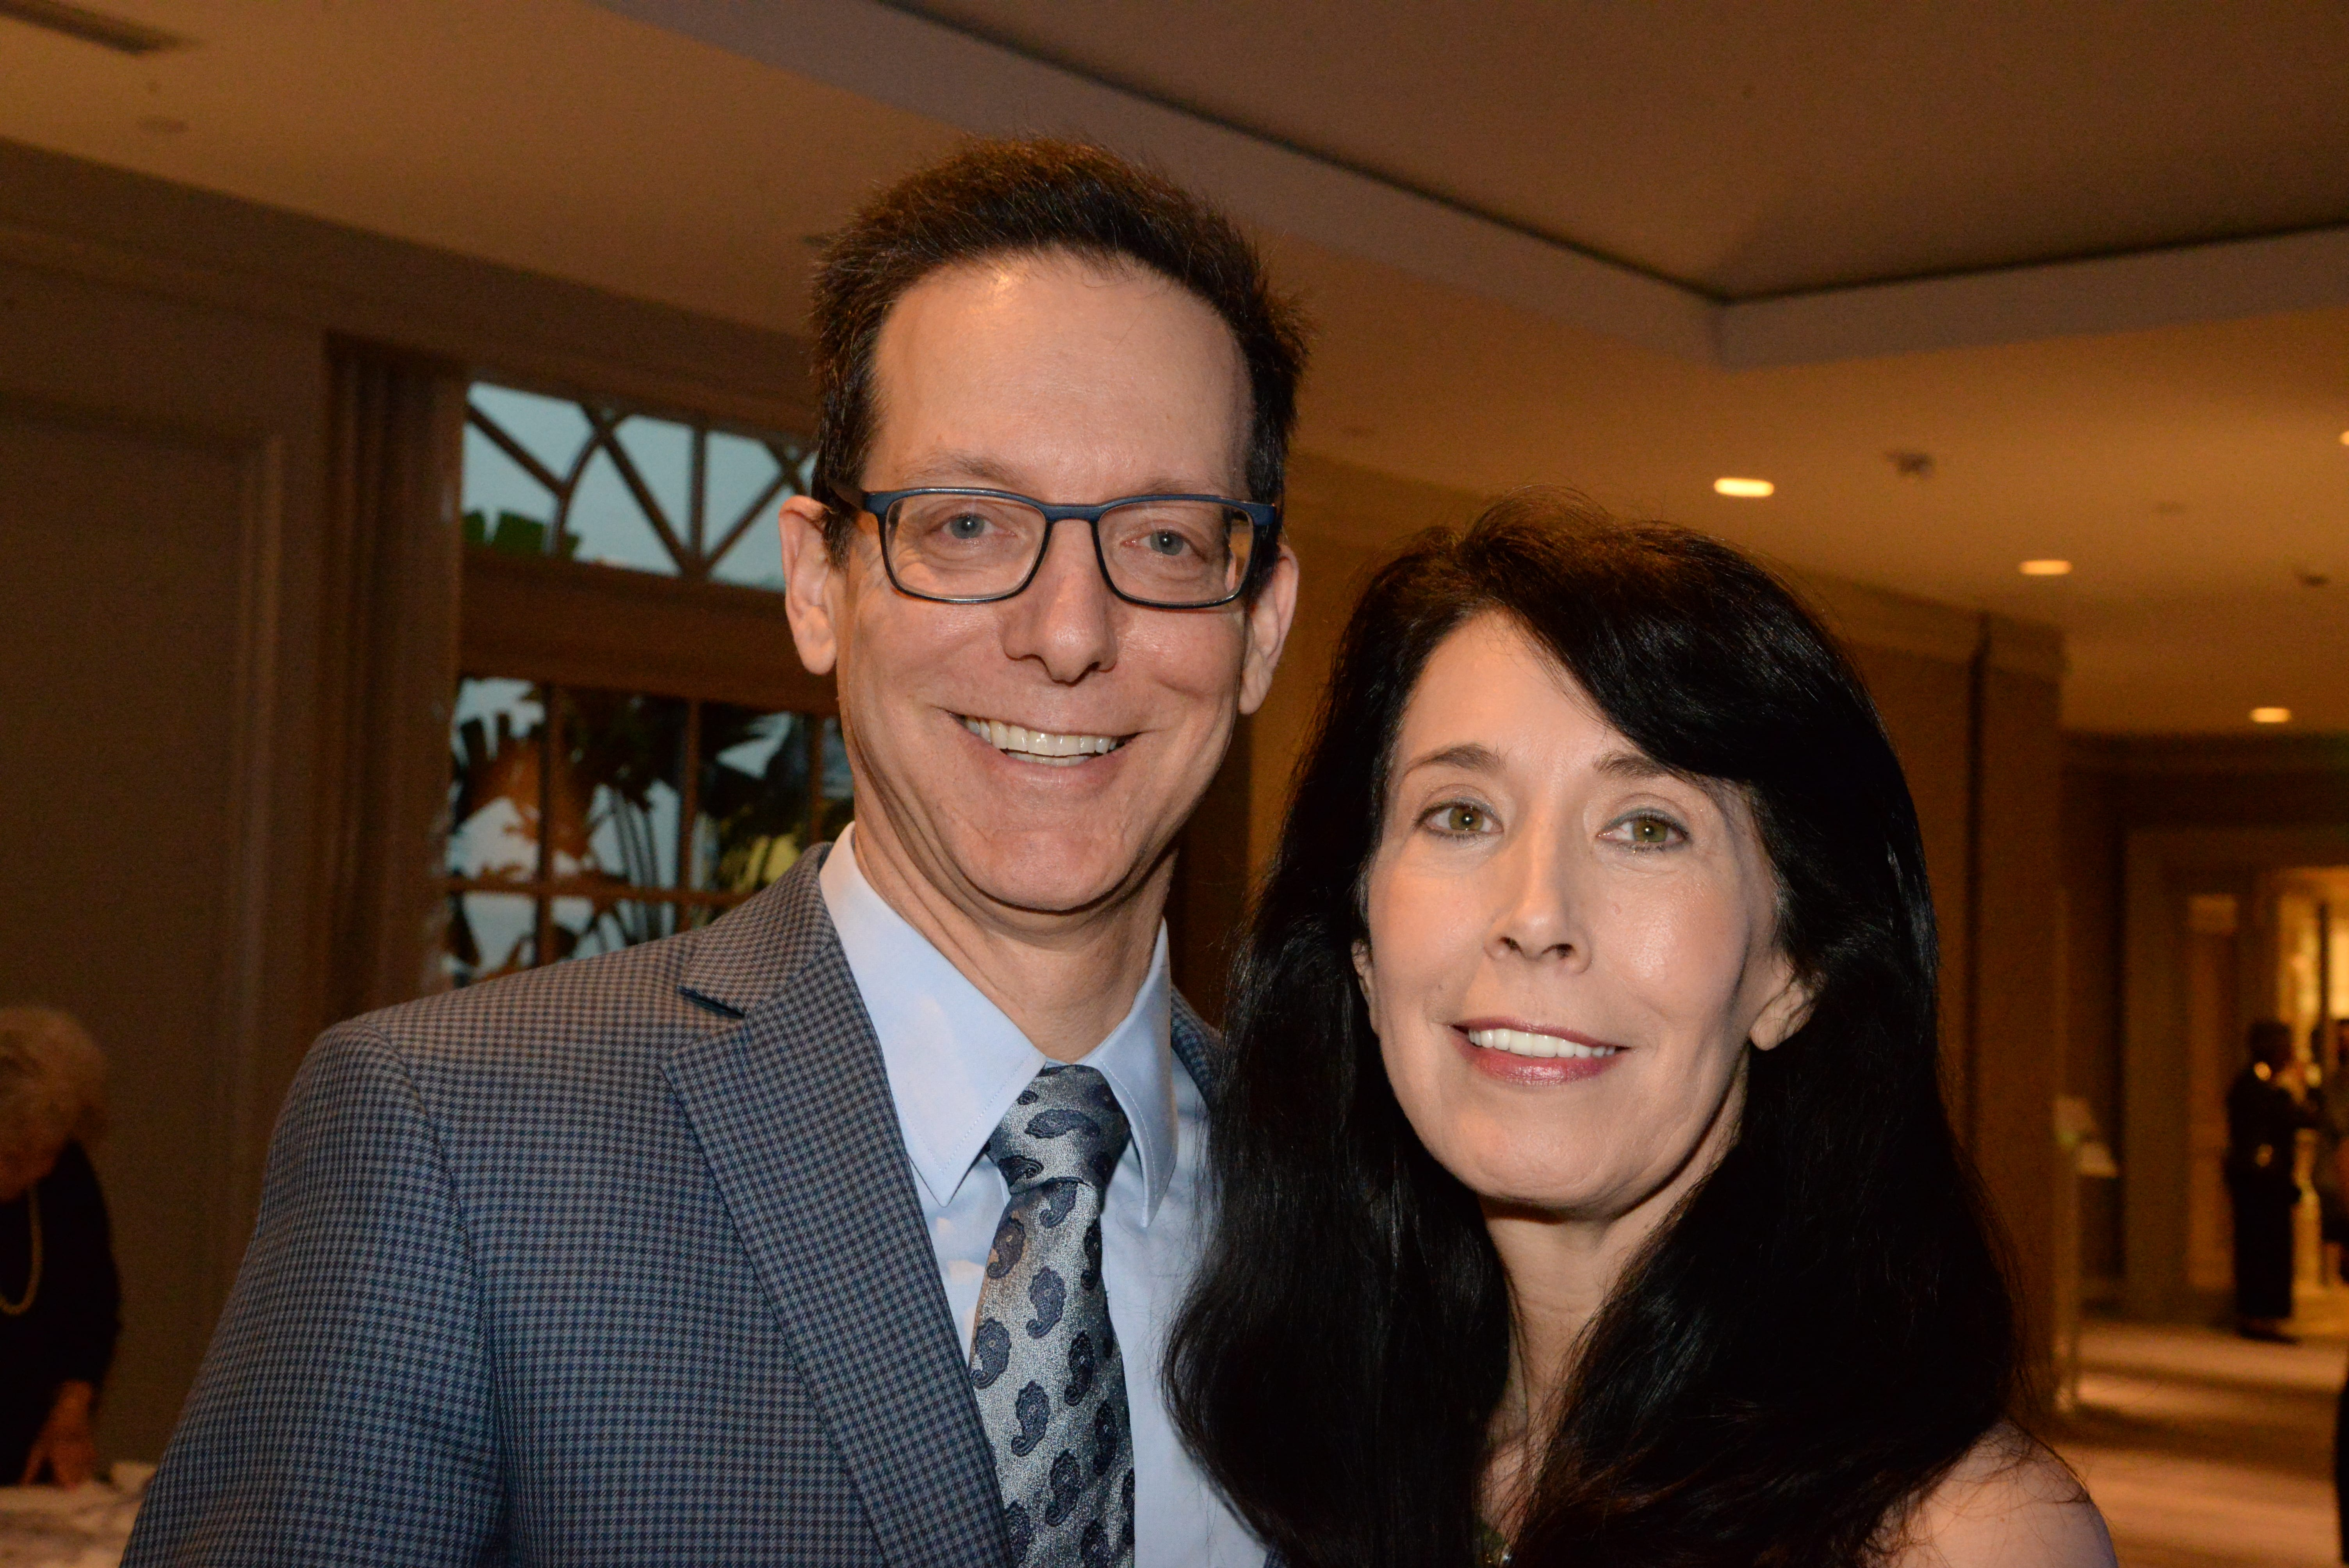 Dr. Craig and Pamela Eichler